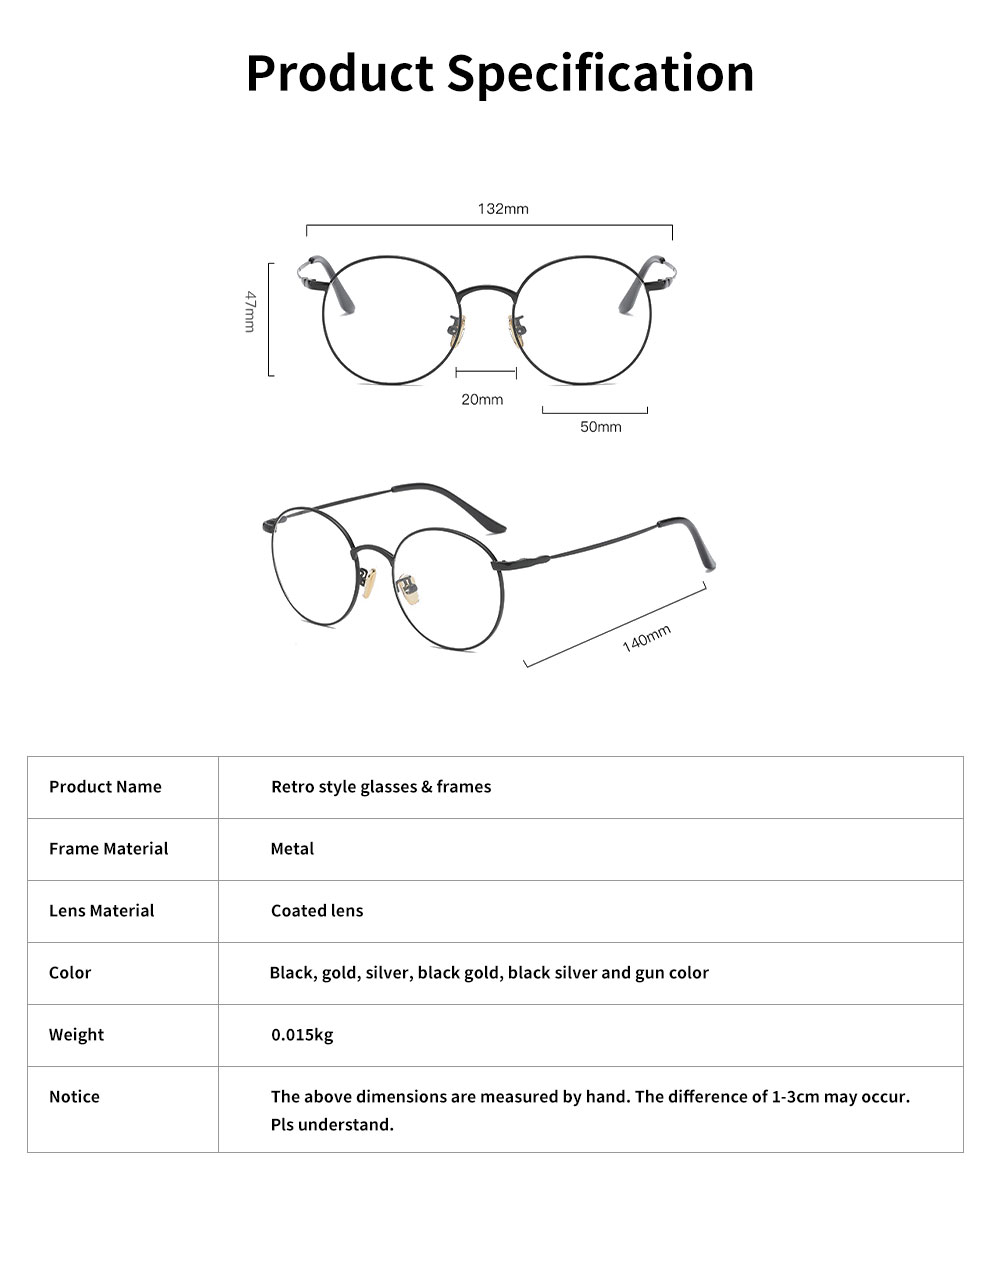 Unisex Retro Style Radiation Protection Glass Frames, Anti-blue Ray Glasses, Plano Lens Glass Frames Computer Round Frame Glasses Shortsighted Goggles 6